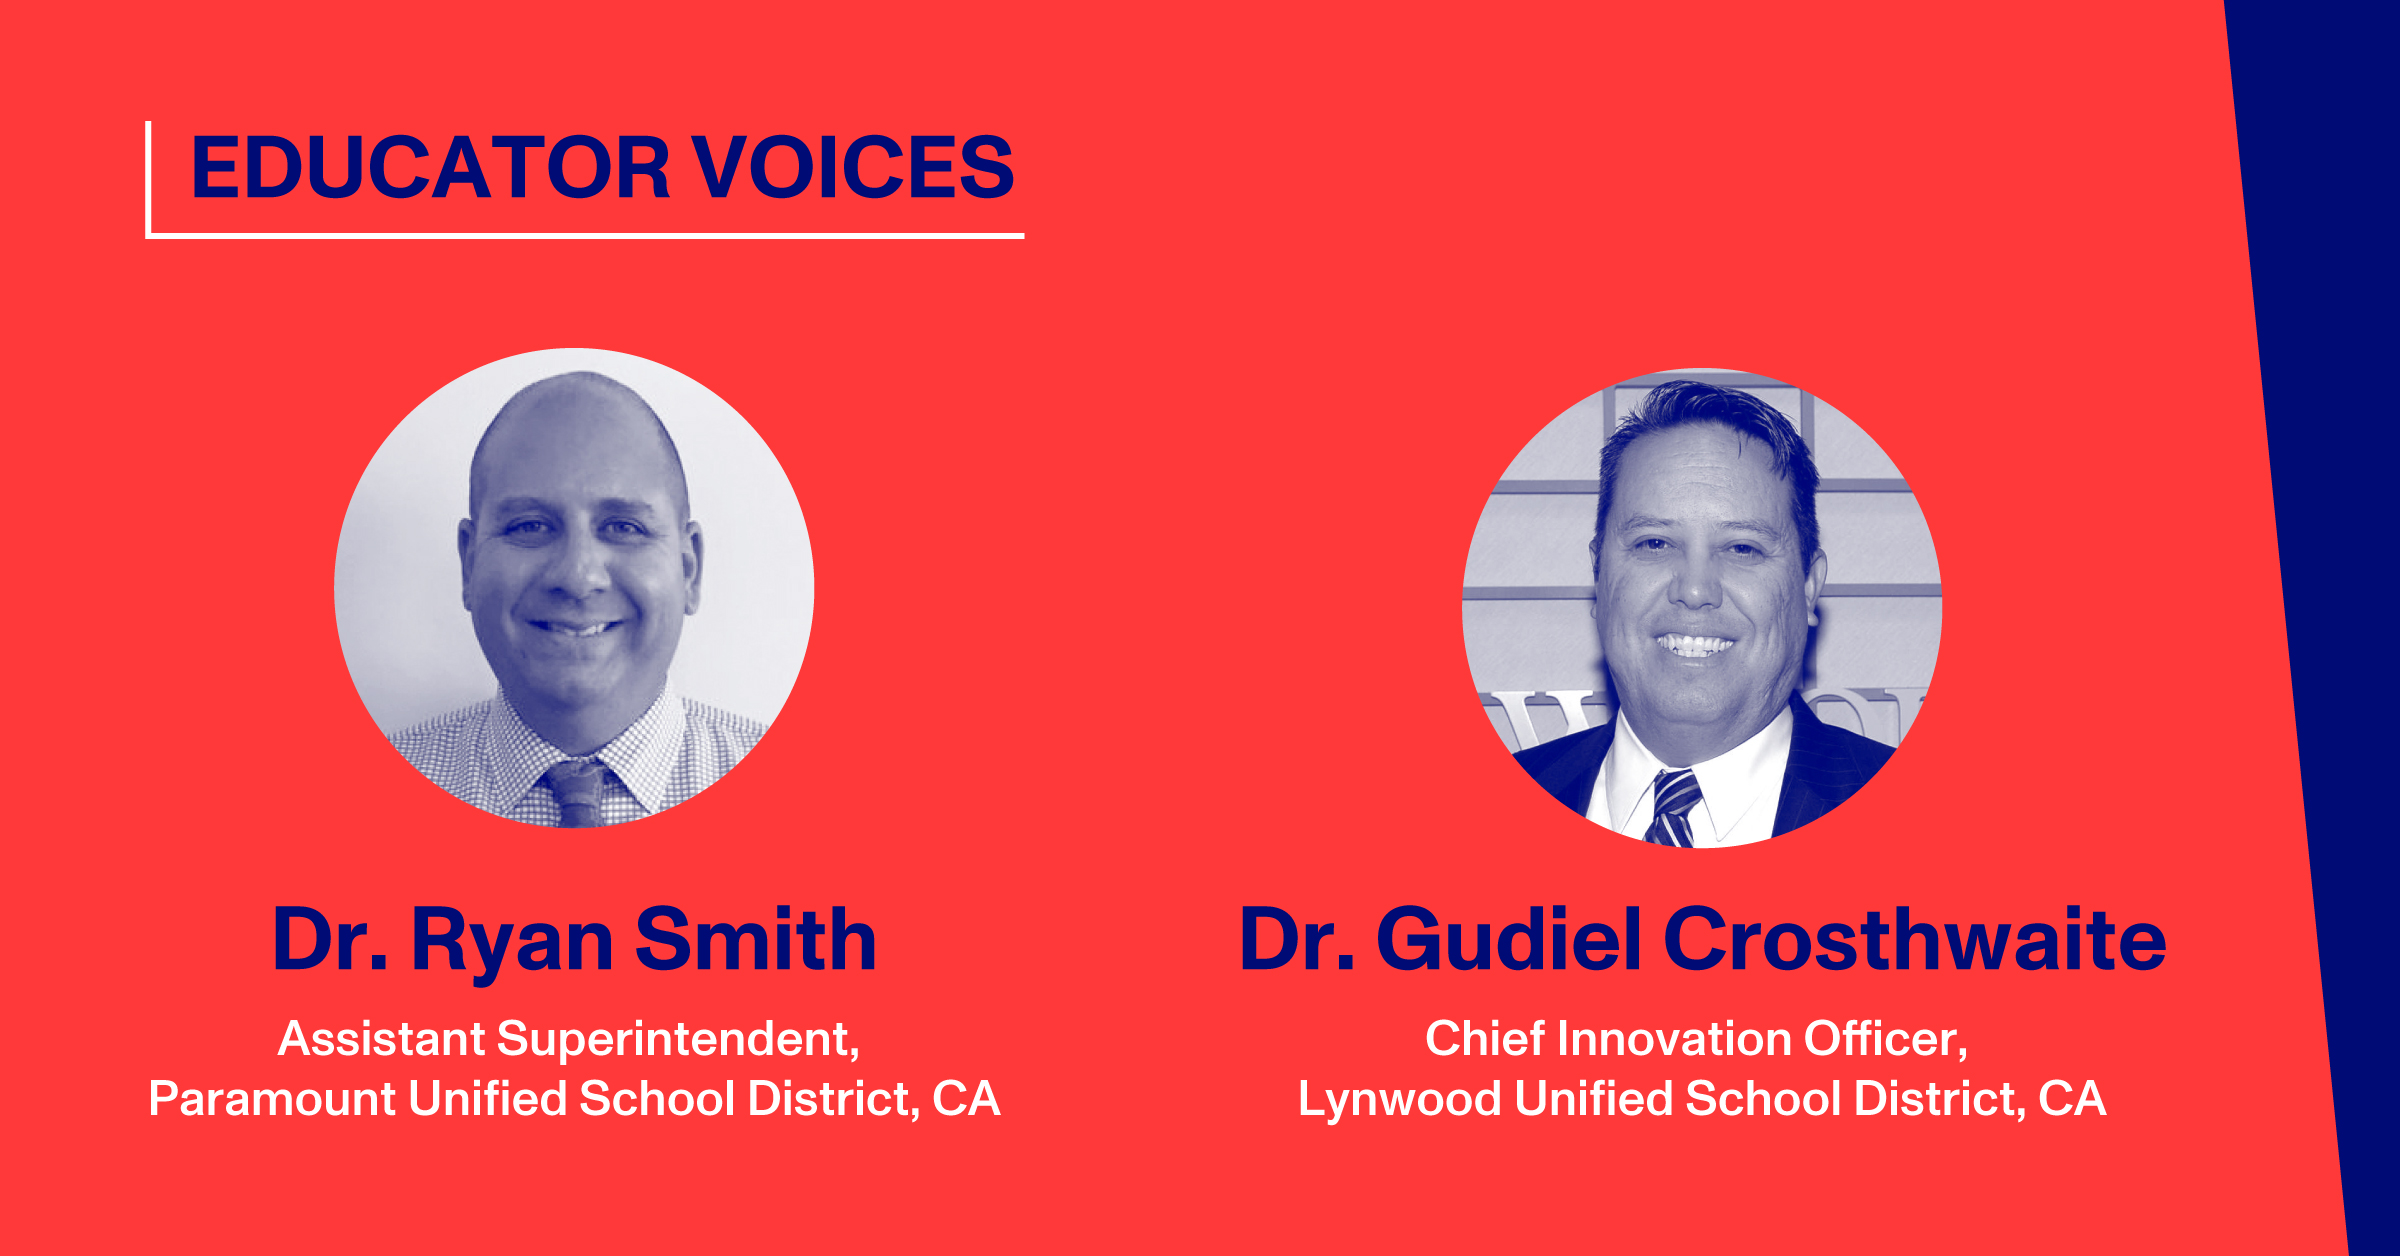 Educator-Voices-Dr.-Ryan-Smith-Dr.-Gudiel-Croswaithe